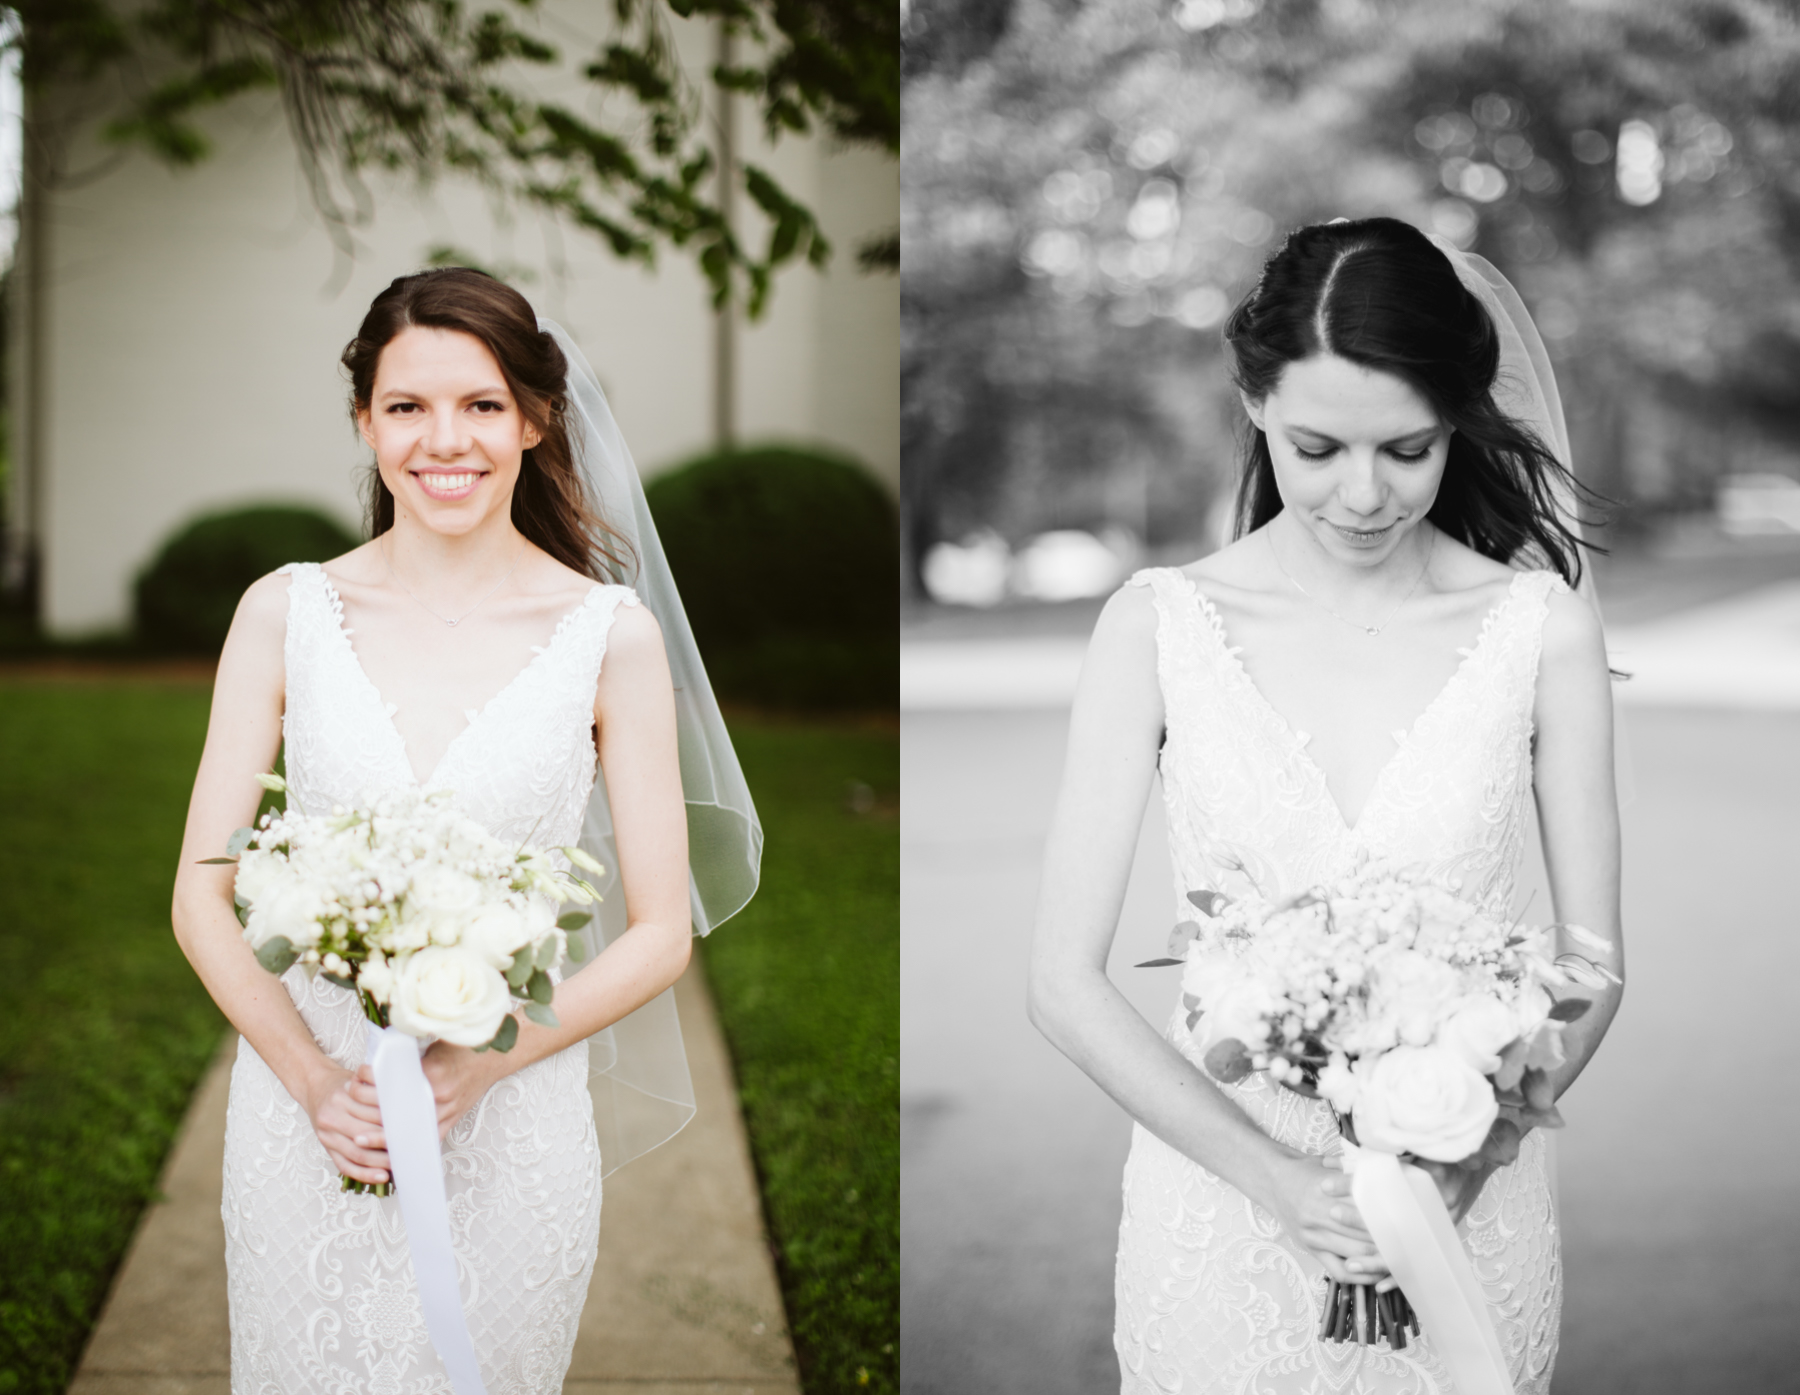 Bridal portraits at a rainy summer wedding at brentwood hills church in Nashville, tennessee